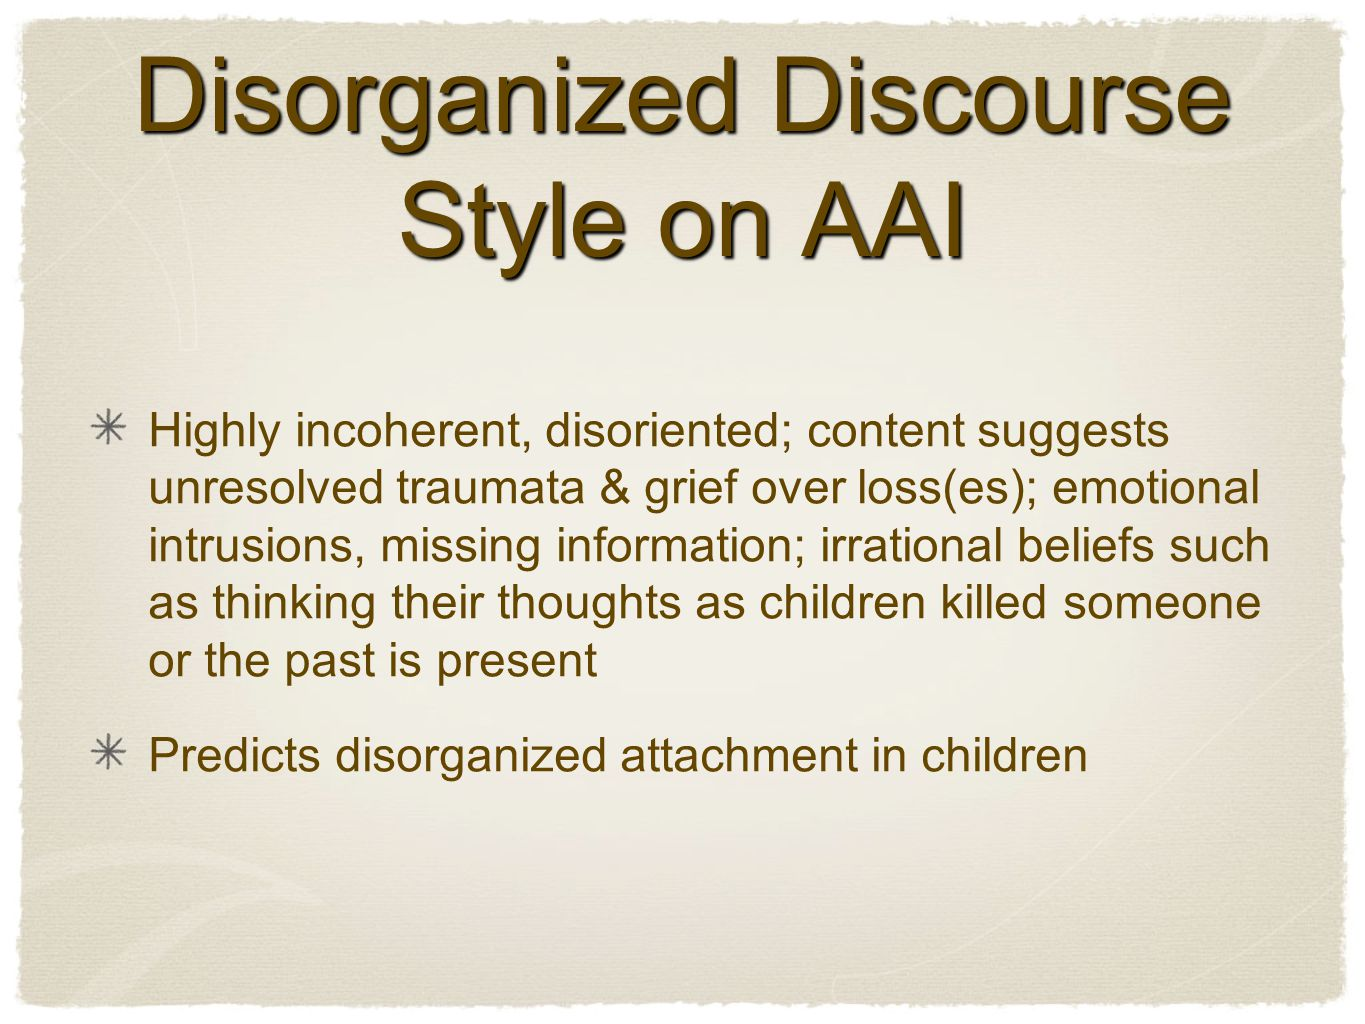 Disorganized Discourse Style on AAI Highly incoherent, disoriented; content suggests unresolved traumata & grief over loss(es); emotional intrusions, missing information; irrational beliefs such as thinking their thoughts as children killed someone or the past is present Predicts disorganized attachment in children